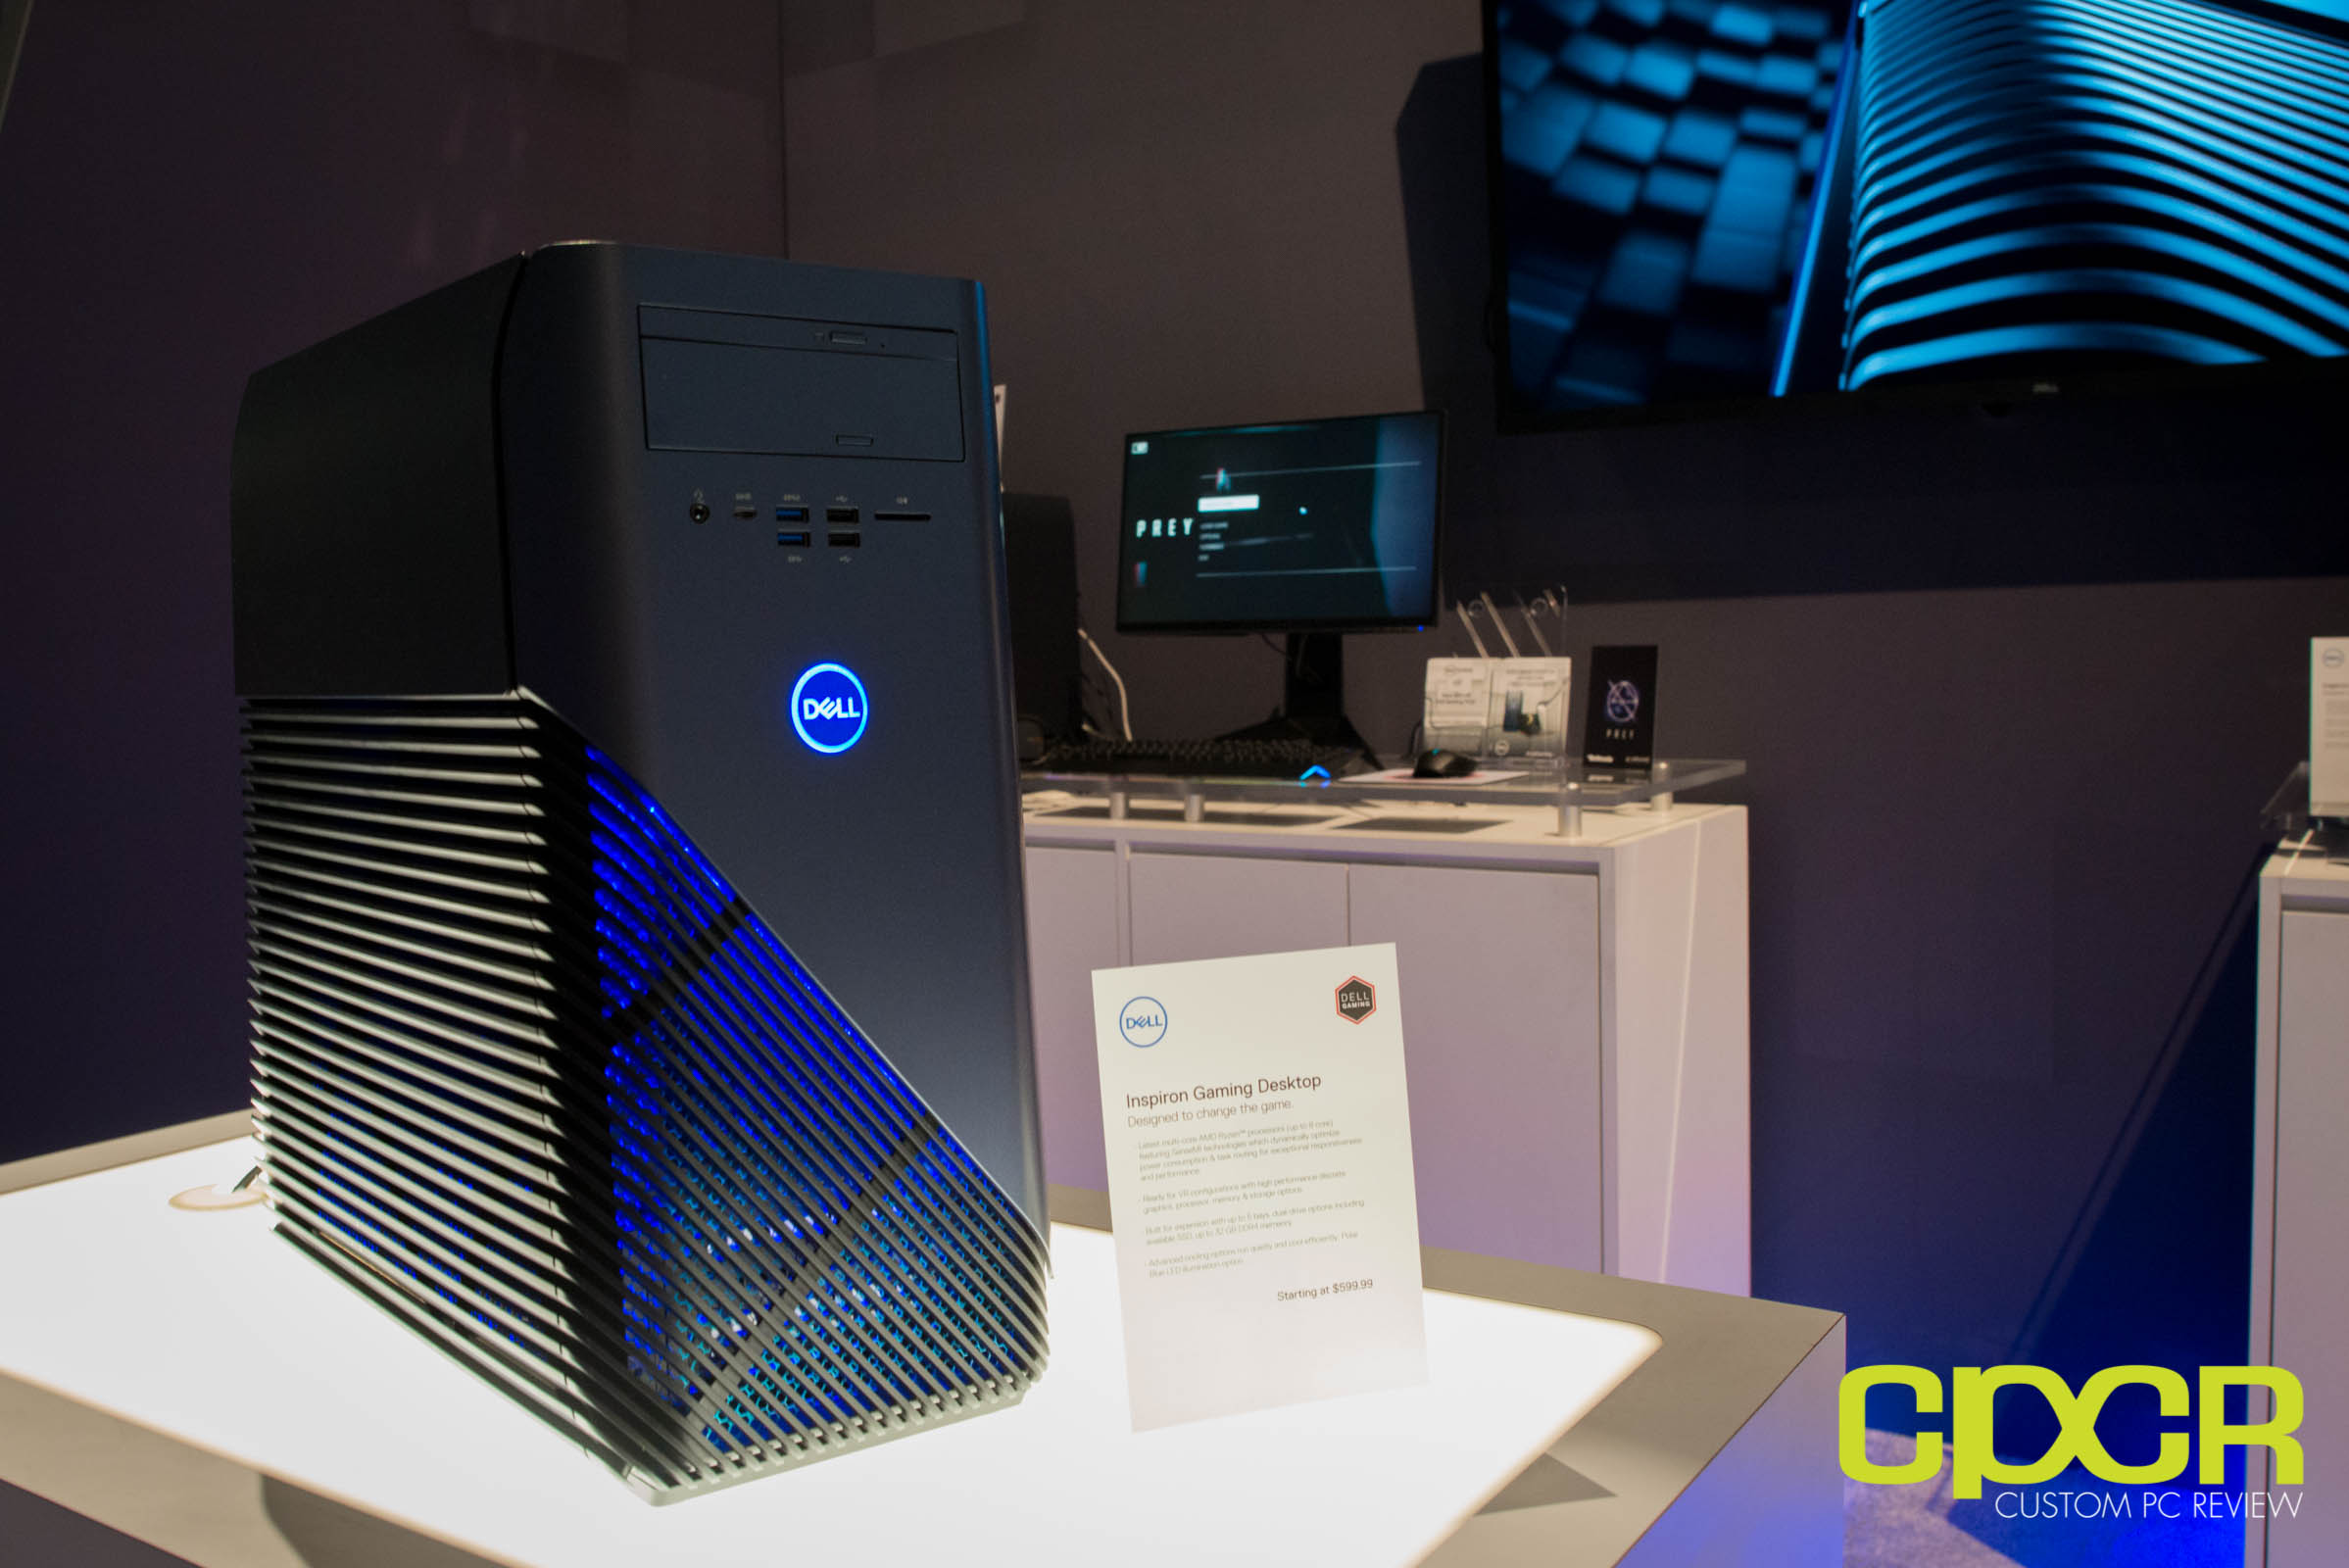 AMD Scores Major Win in Dell Inspiron 5675 Gaming Desktop at E3 2017 | Custom PC Review